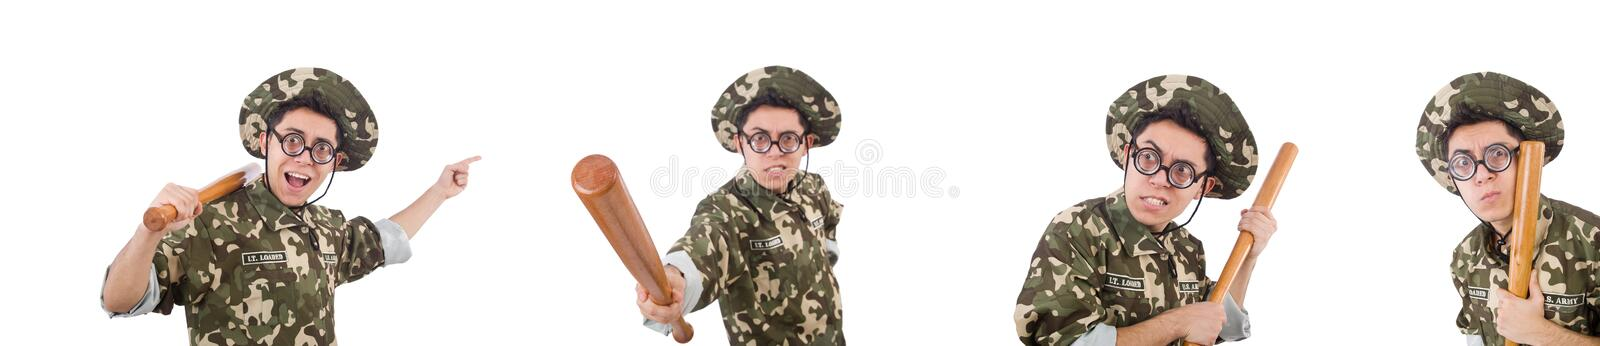 Soldier with baseball bat isolated on white stock photo